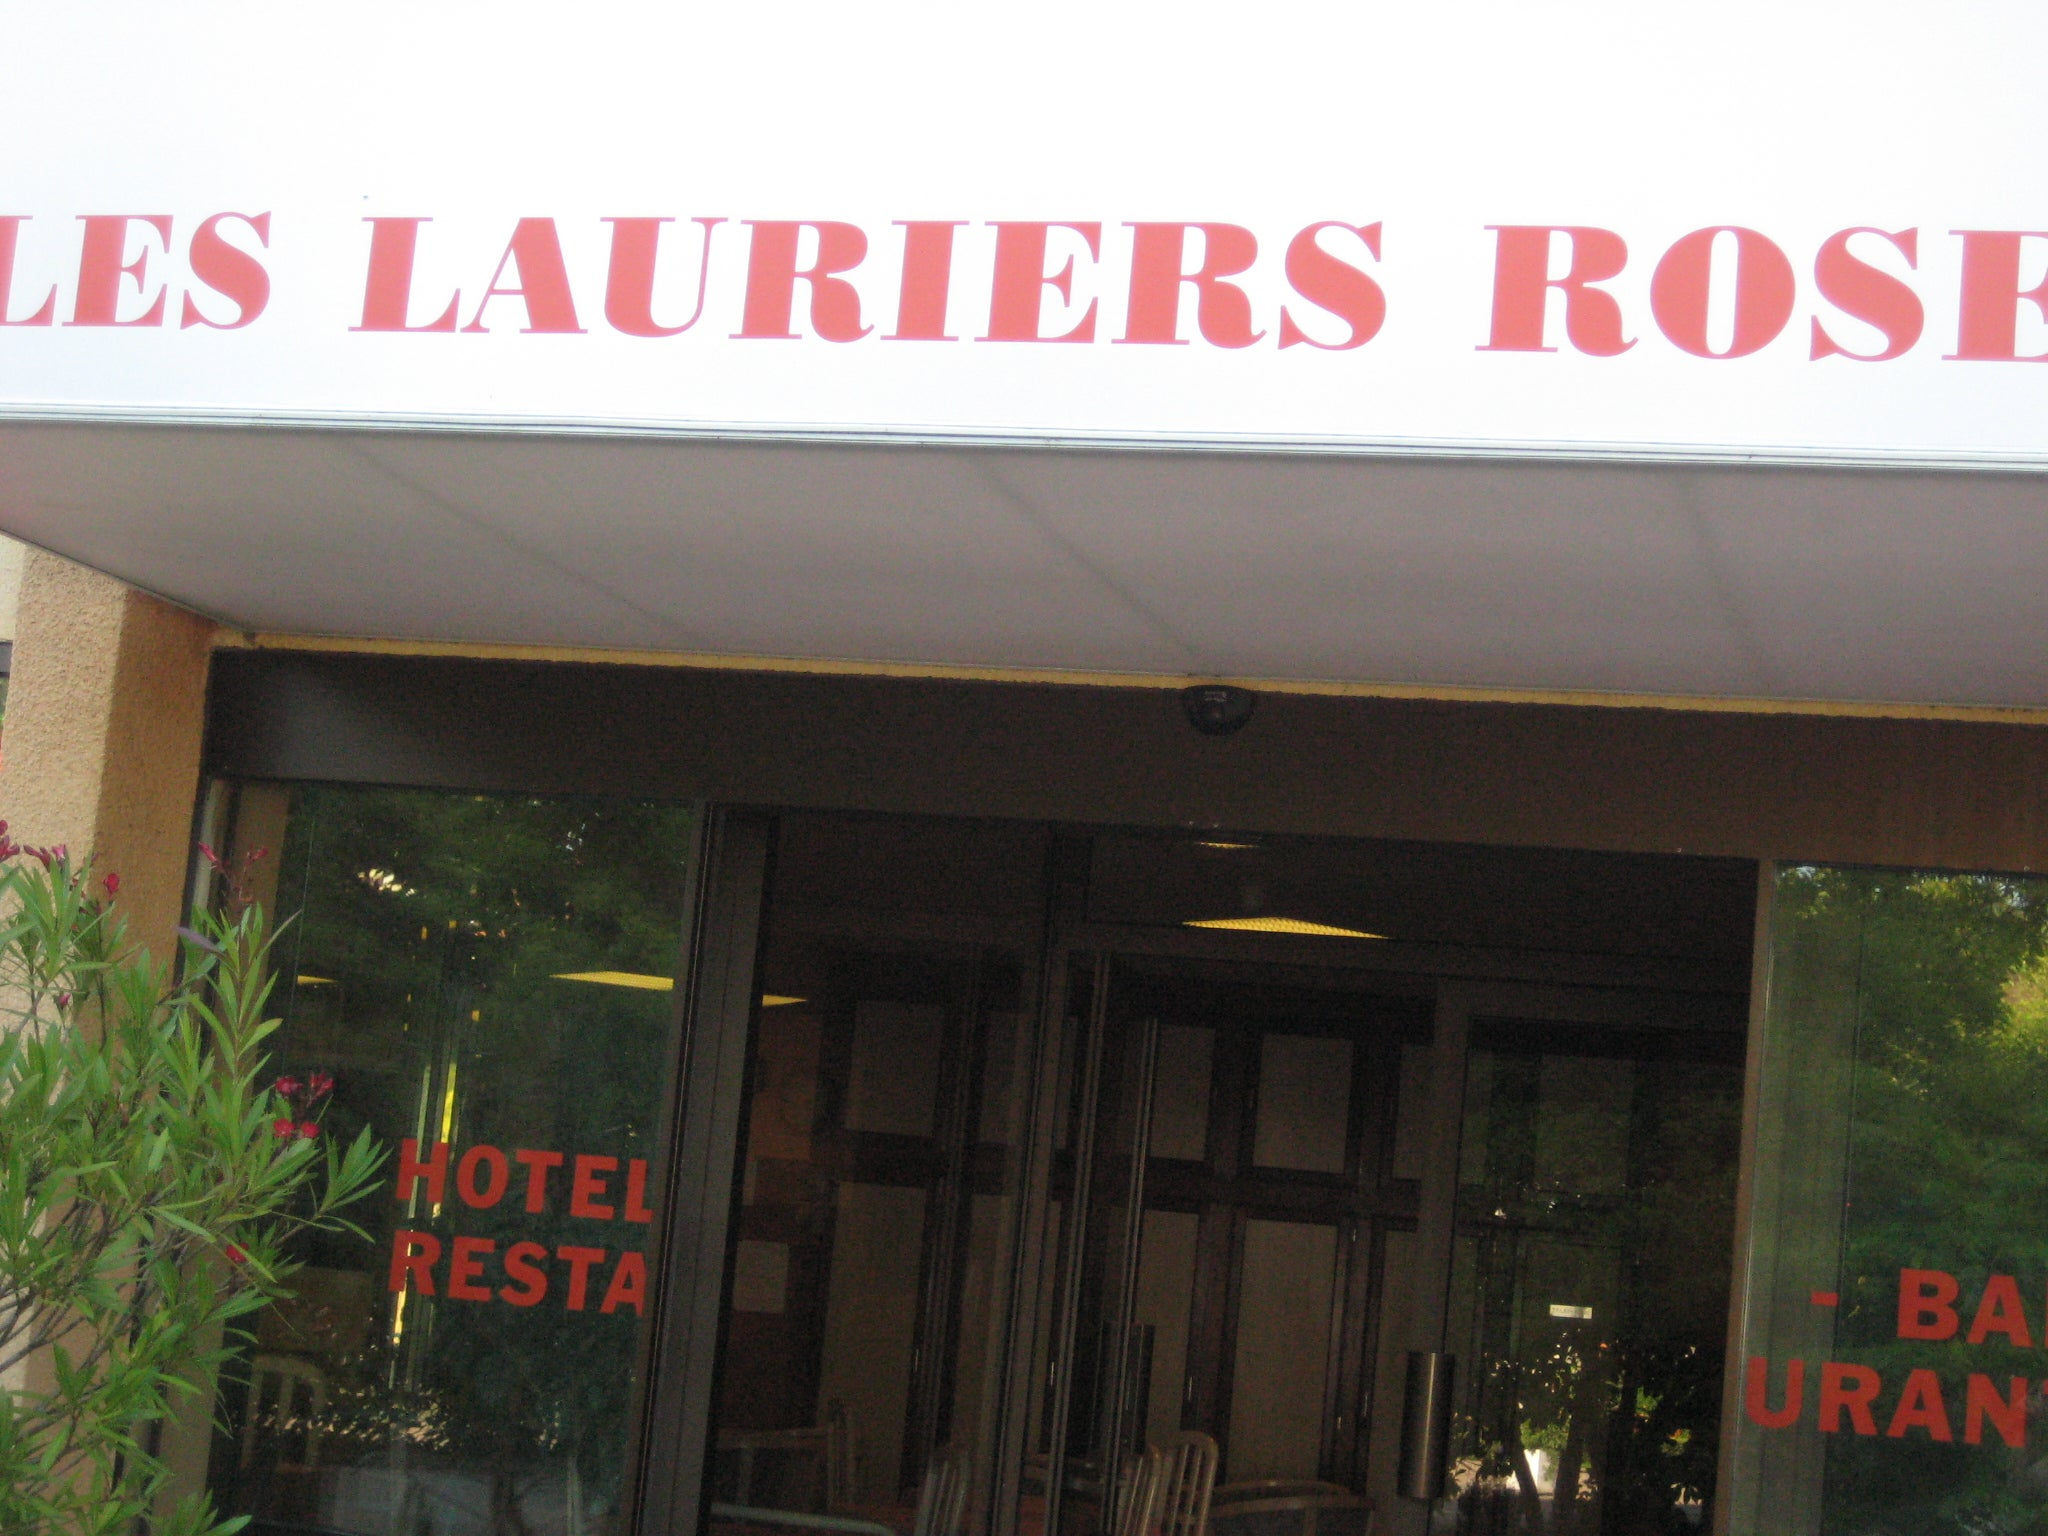 Hotel des Lauriers Roses